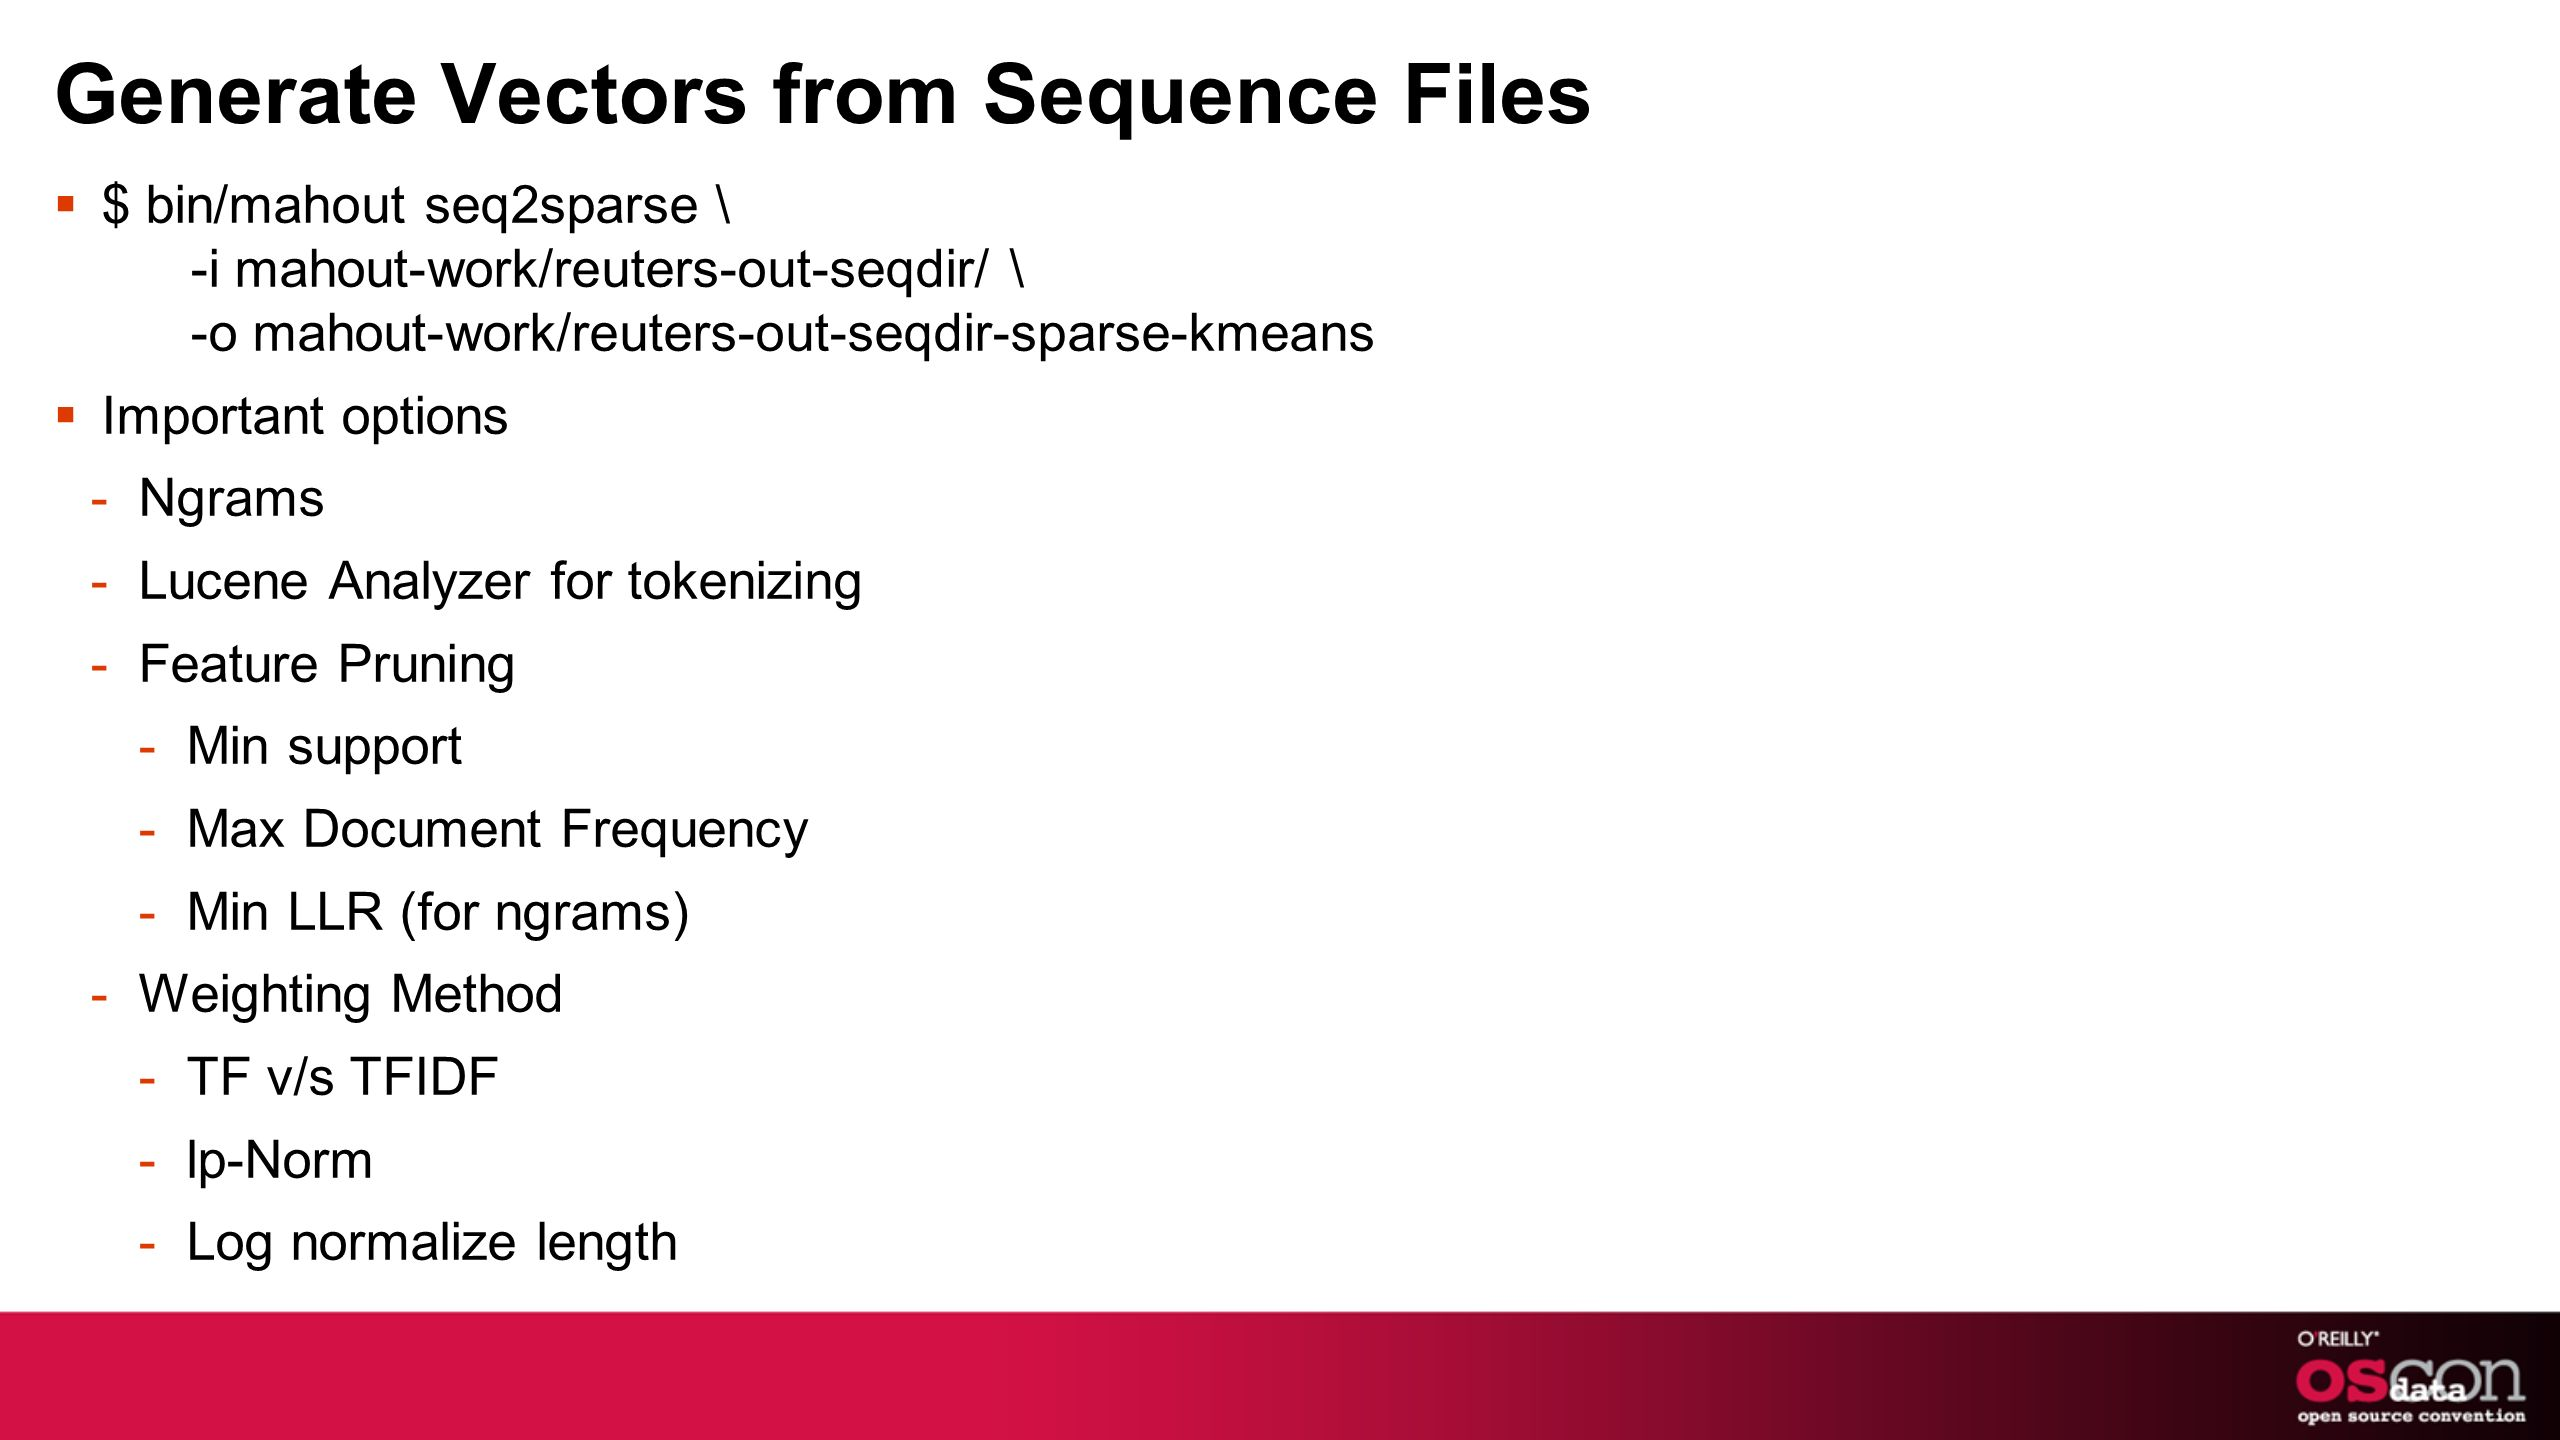 Generate Vectors from Sequence Files $ bin/mahout seq2sparse \ -i mahout-work/reuters-out-seqdir/ \ -o mahout-work/reuters-out-seqdir-sparse-kmeans Important options -Ngrams -Lucene Analyzer for tokenizing -Feature Pruning -Min support -Max Document Frequency -Min LLR (for ngrams) -Weighting Method -TF v/s TFIDF -lp-Norm -Log normalize length